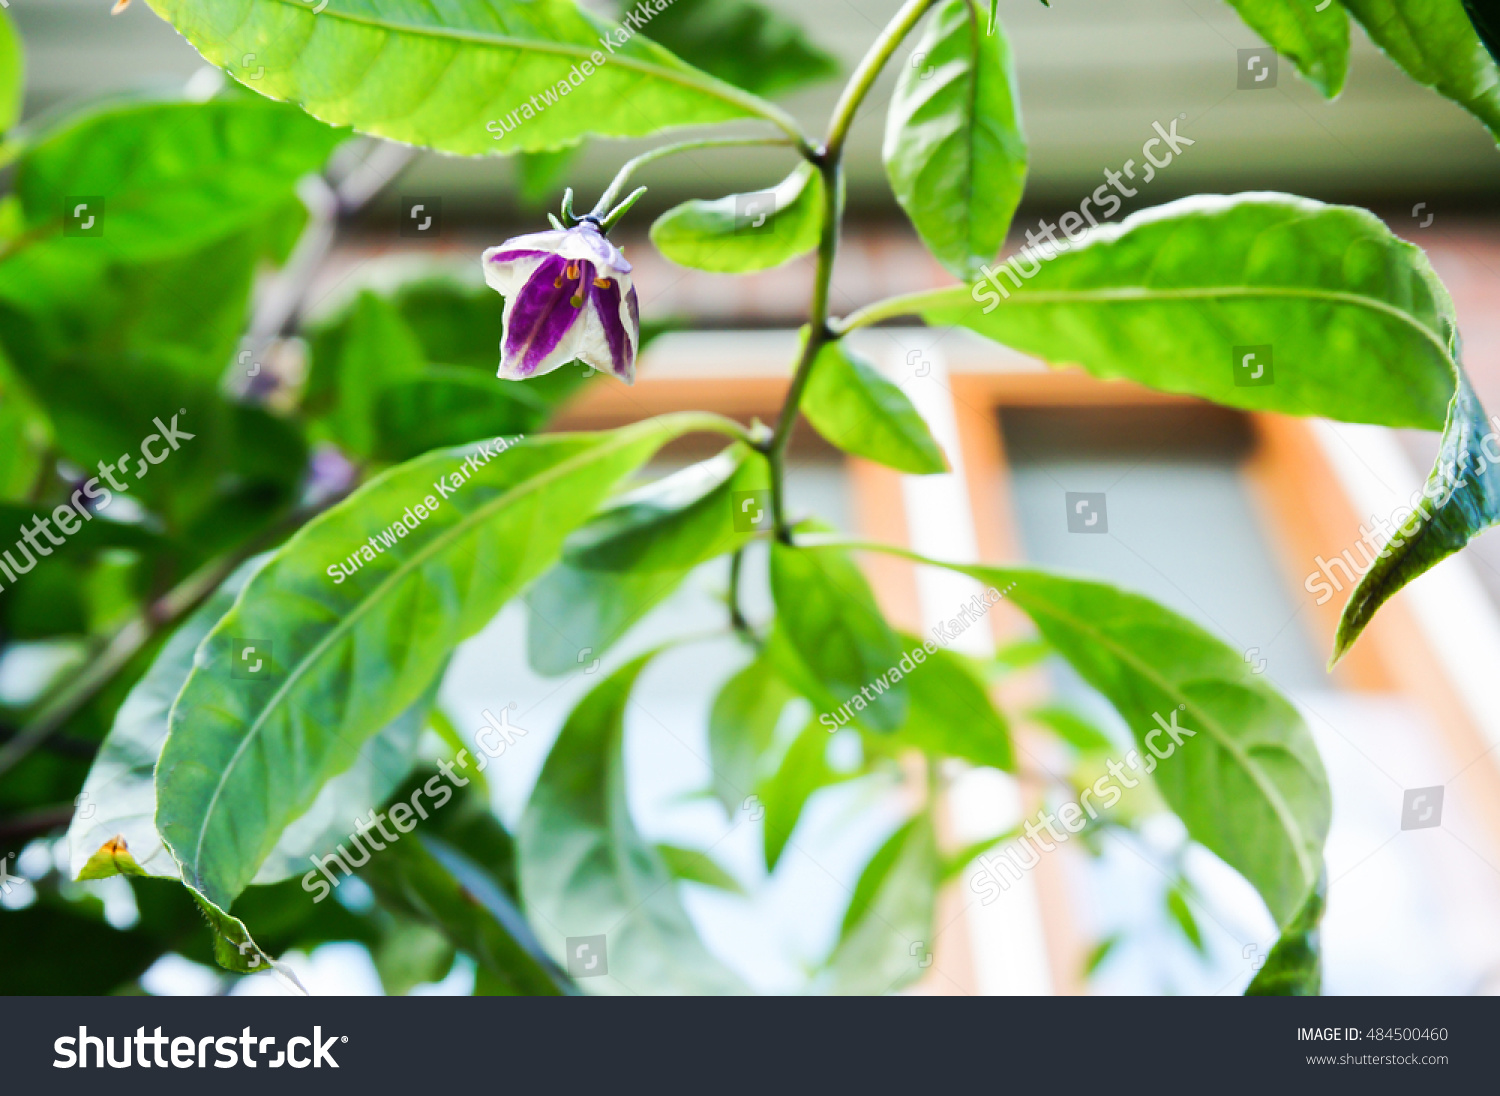 Royalty Free Purple And White Chilli Flower 484500460 Stock Photo